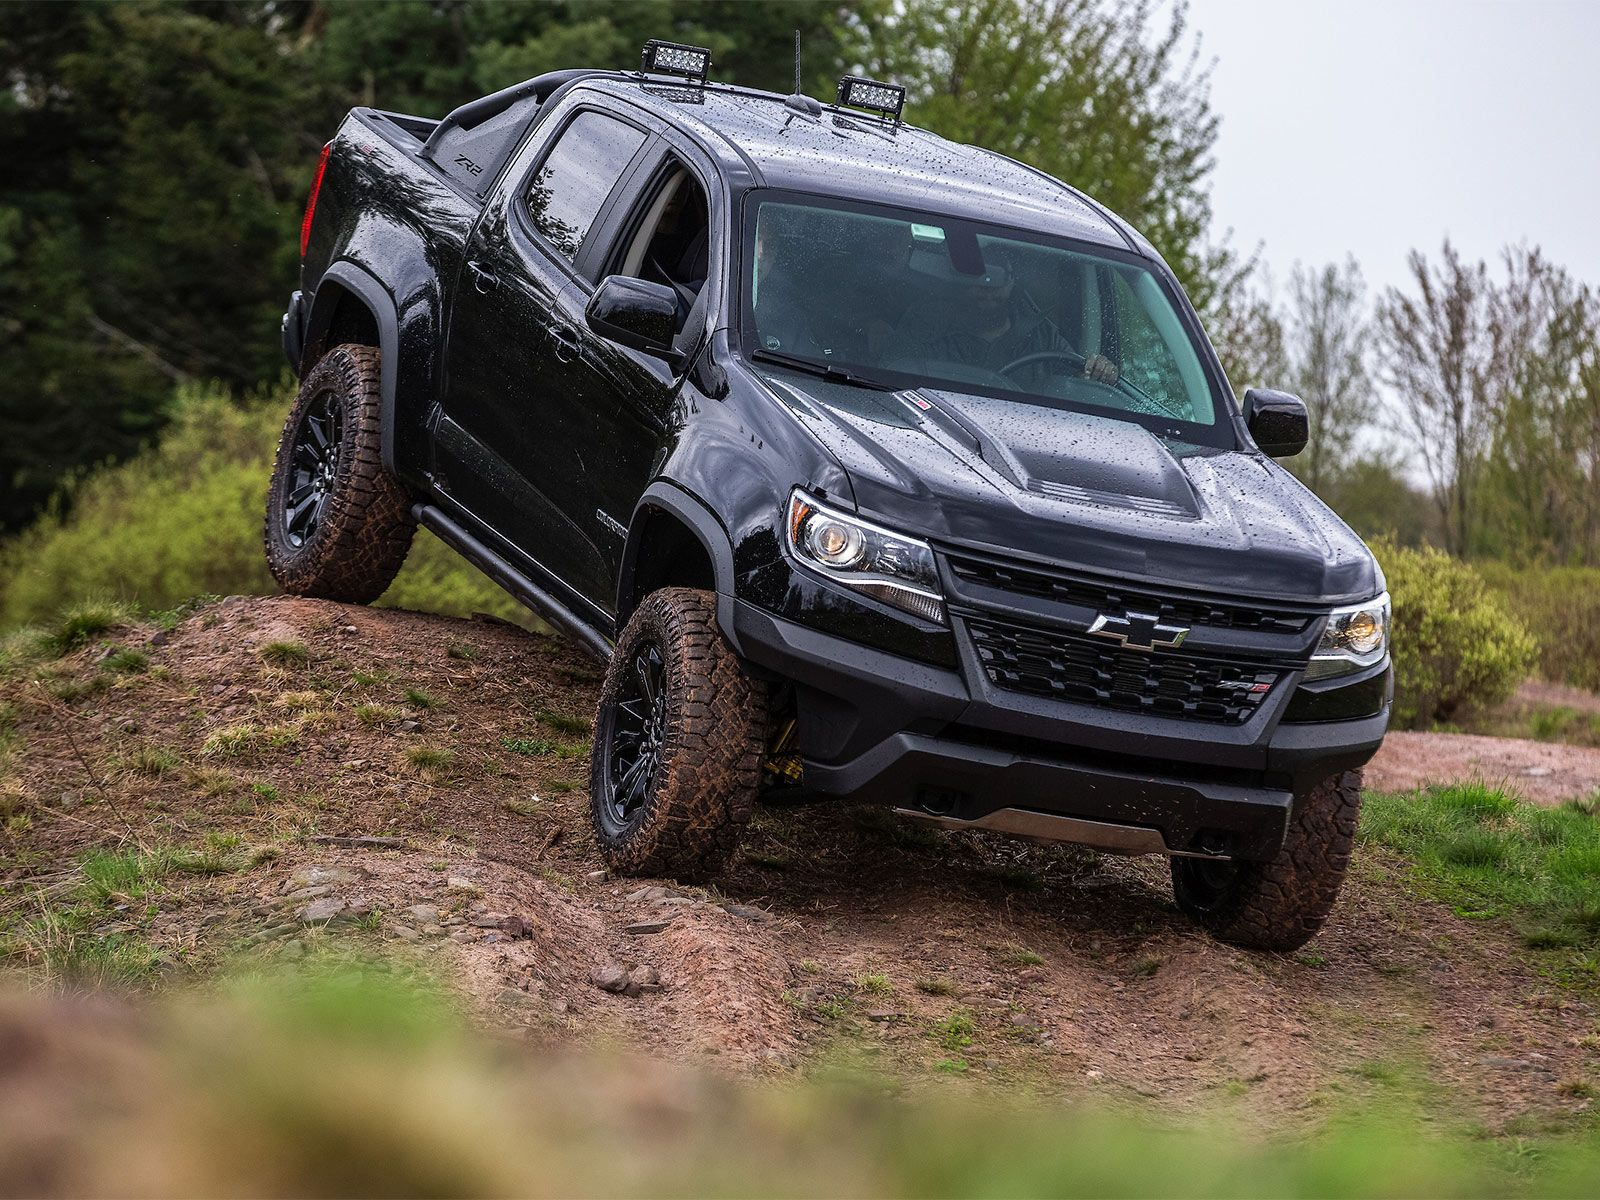 Image Result For 2019 Chevy Colorado Zr2 Midnight Light Bar Chevy Colorado Chevrolet Colorado Chevy Colorado Z71